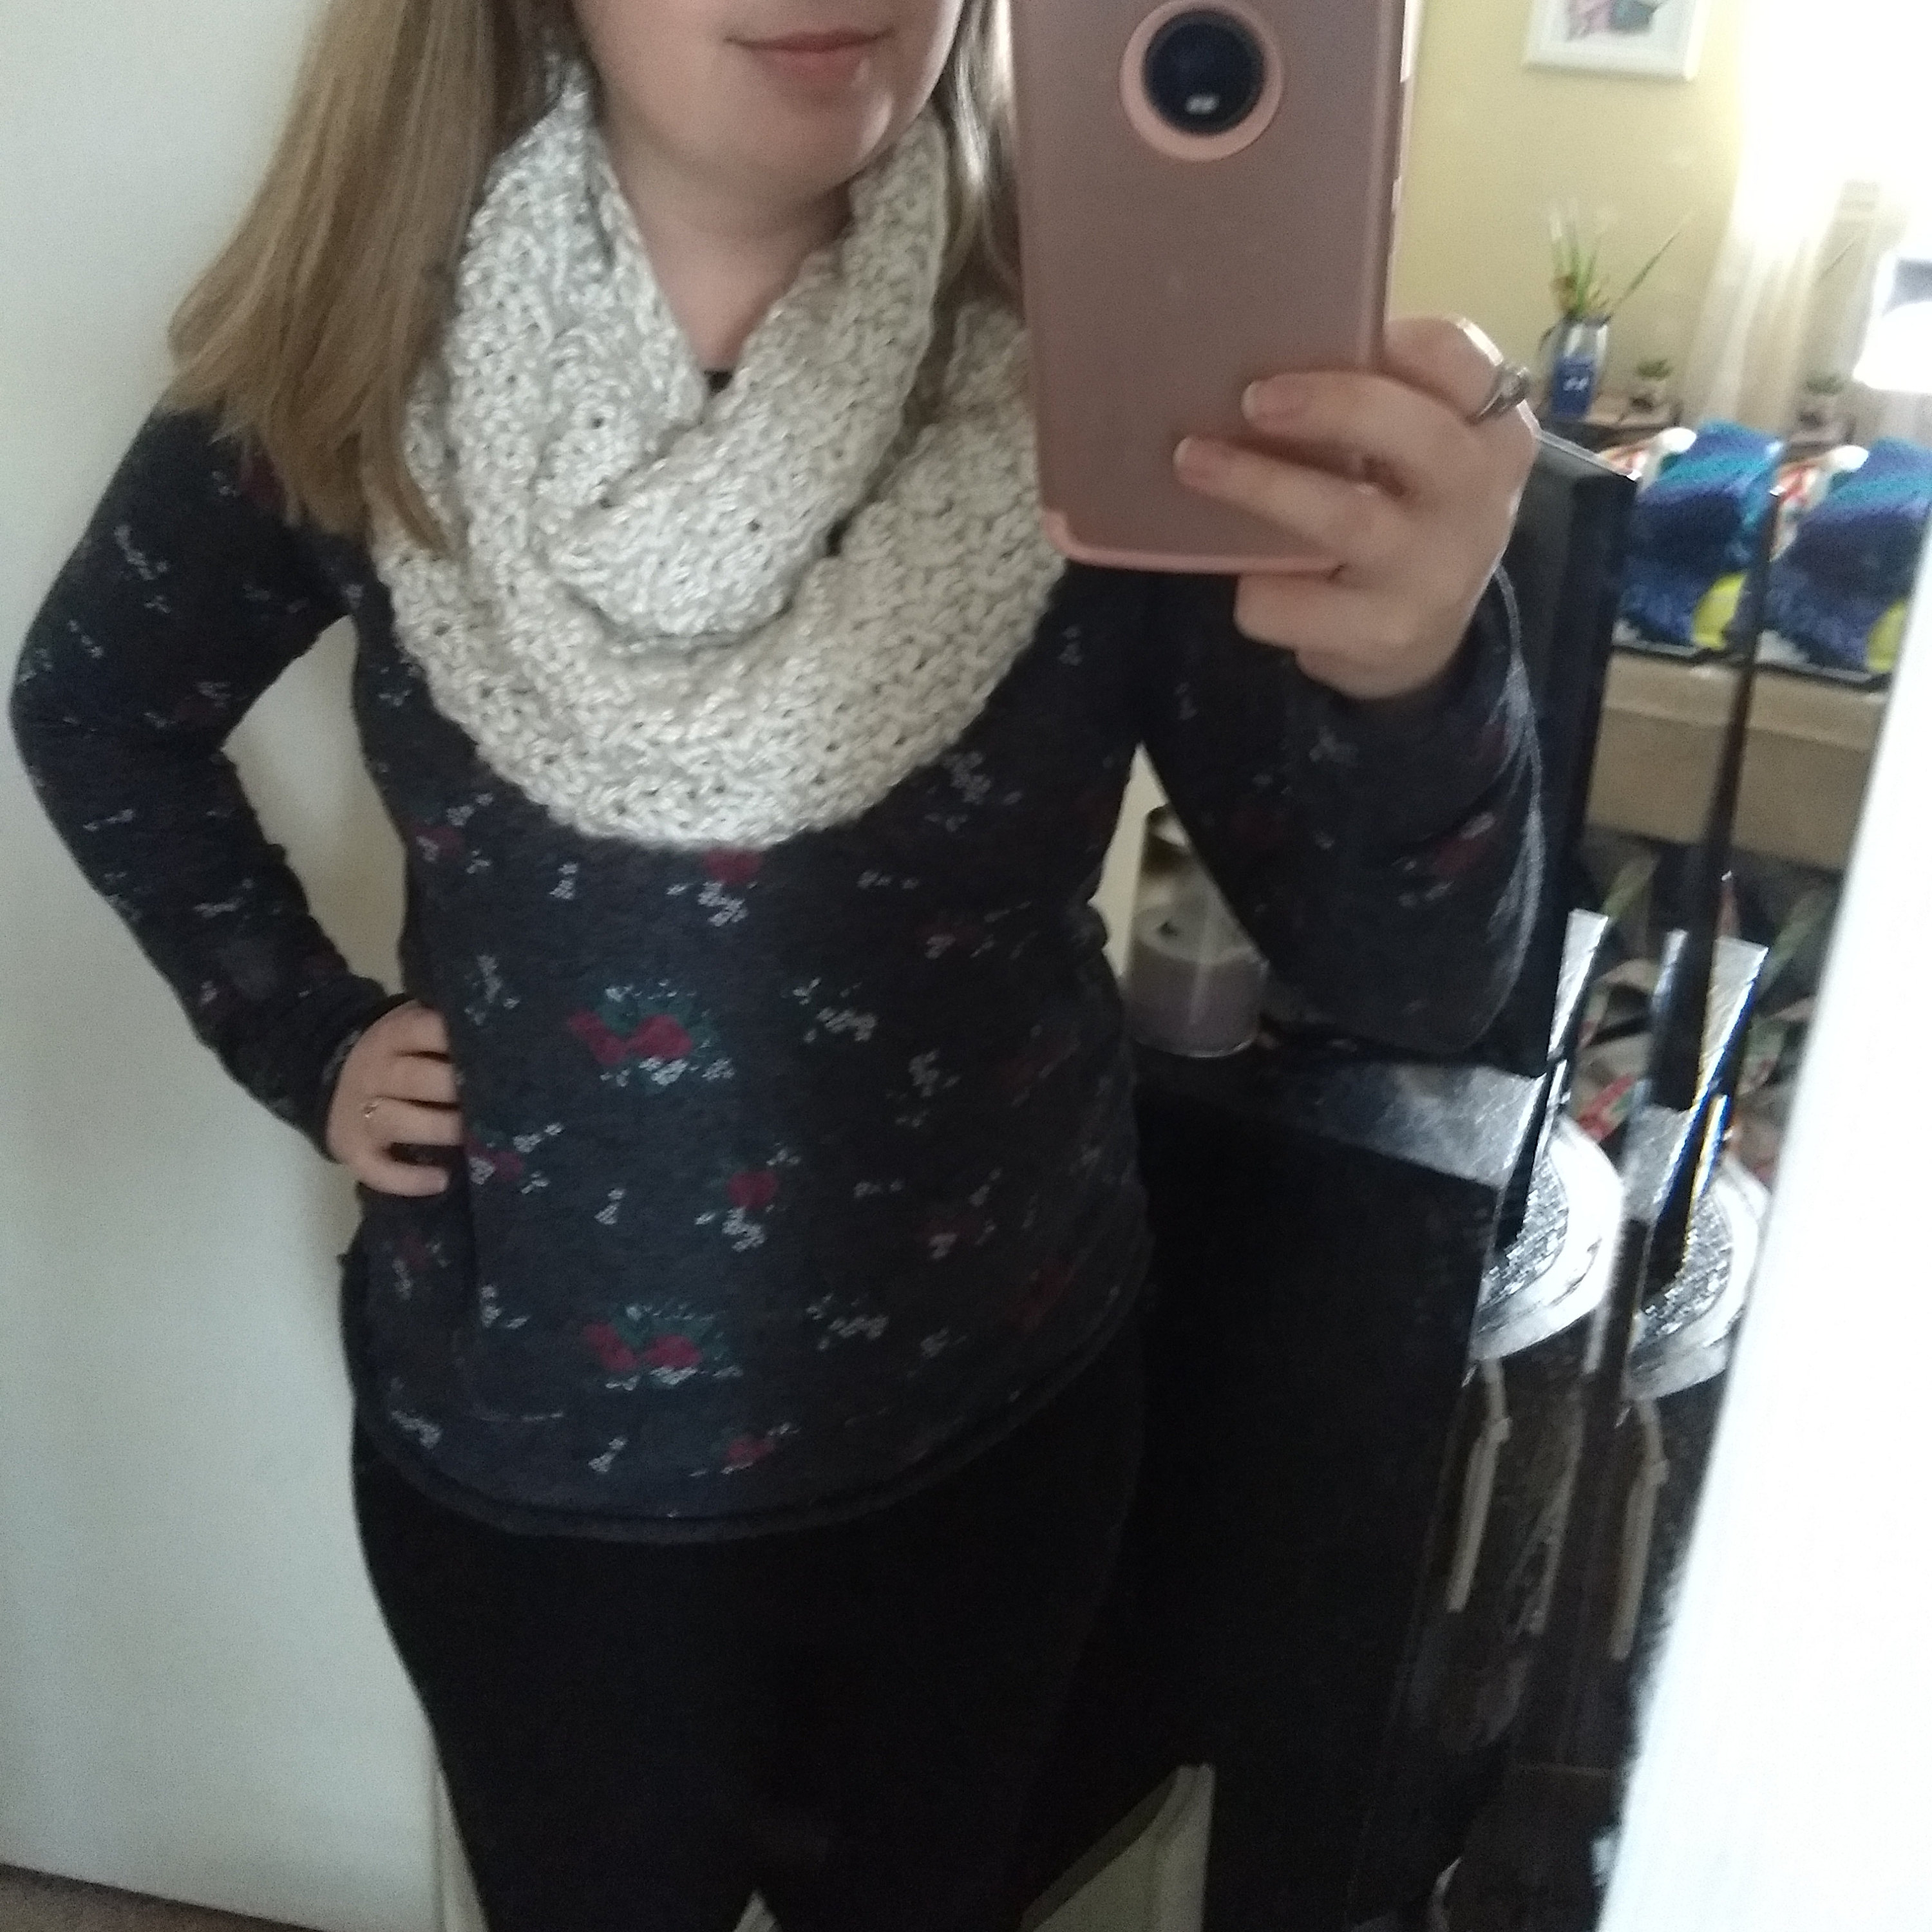 Megan Schoettler added a photo of their purchase